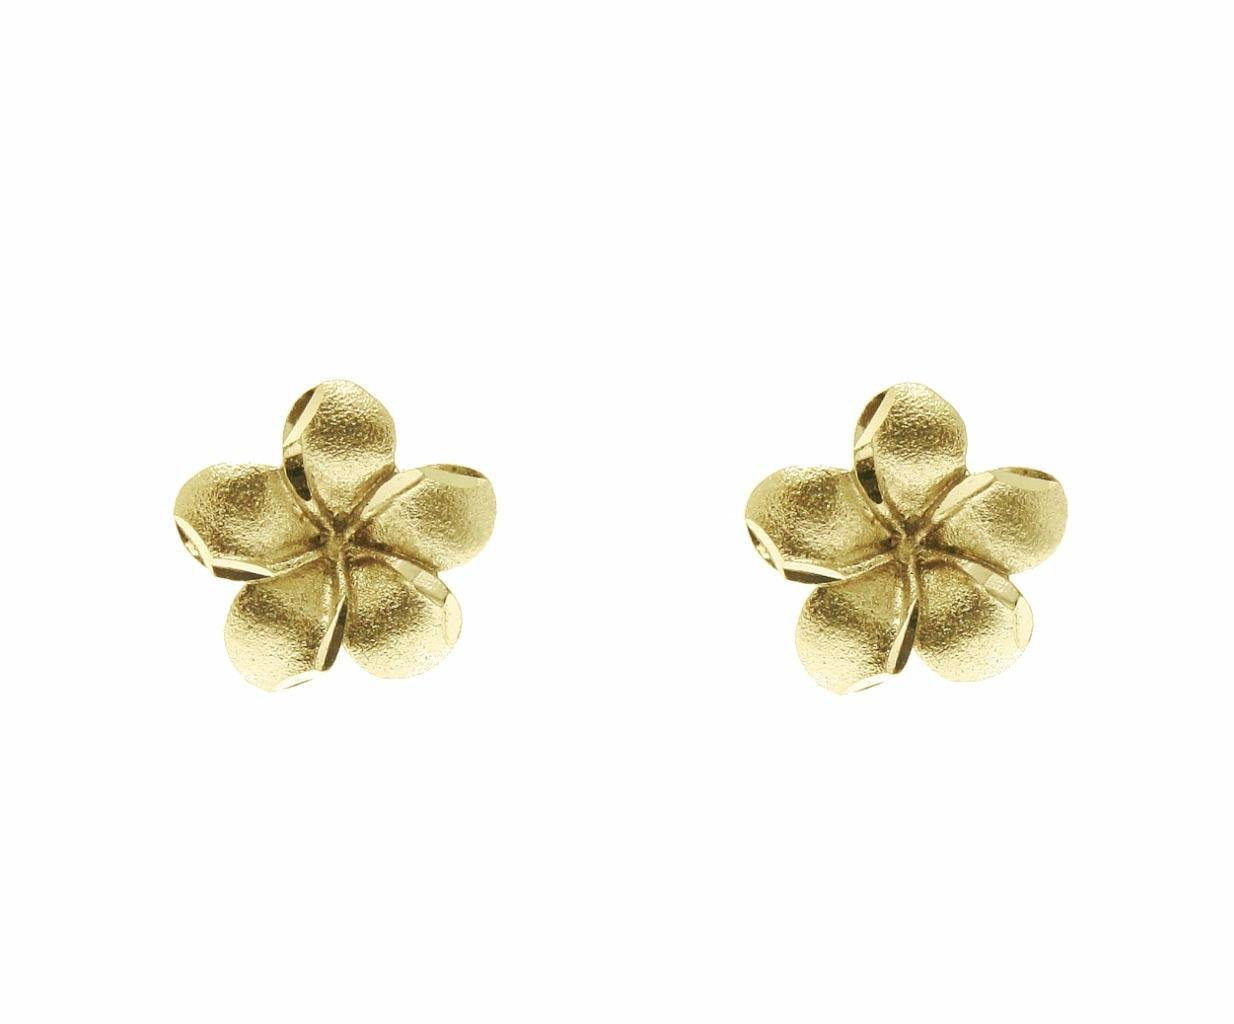 14K solid 9mm yellow gold Hawaiian tropical plumeria flower stud post earrings